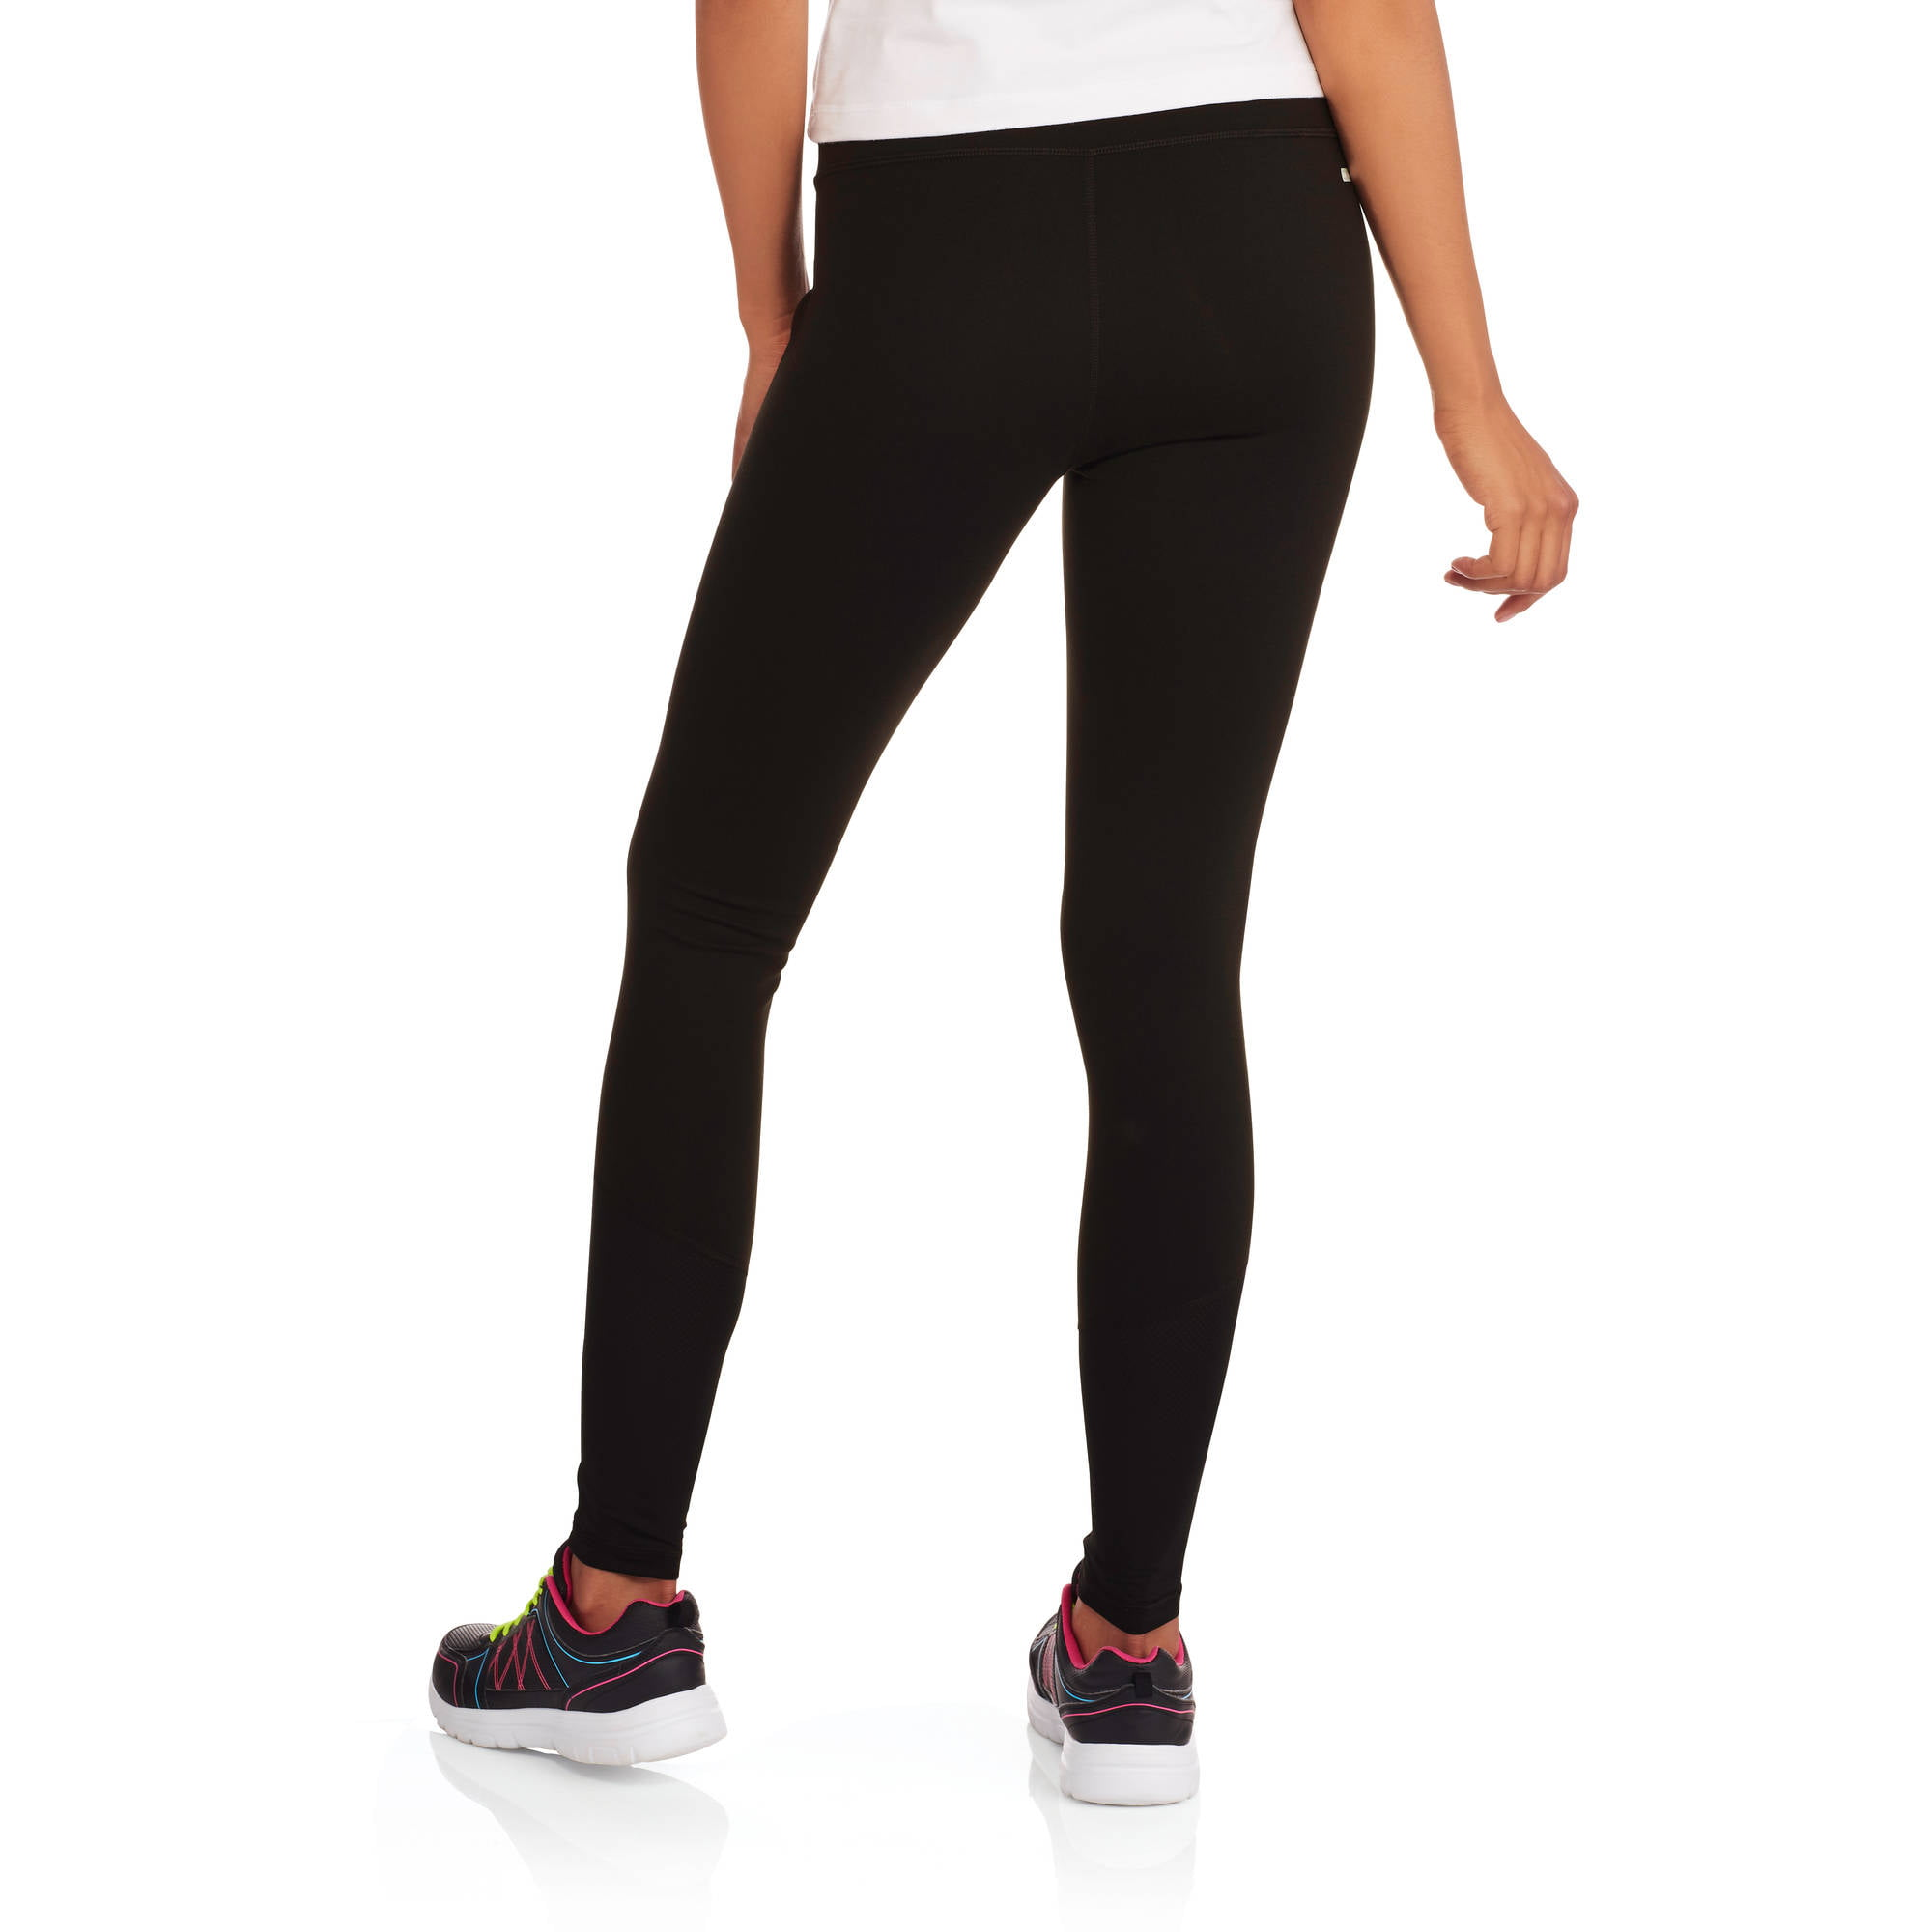 f3a6cfd04cde1 Danskin Now - Women's Performance Compression Leggings with Mesh Insets -  Walmart.com